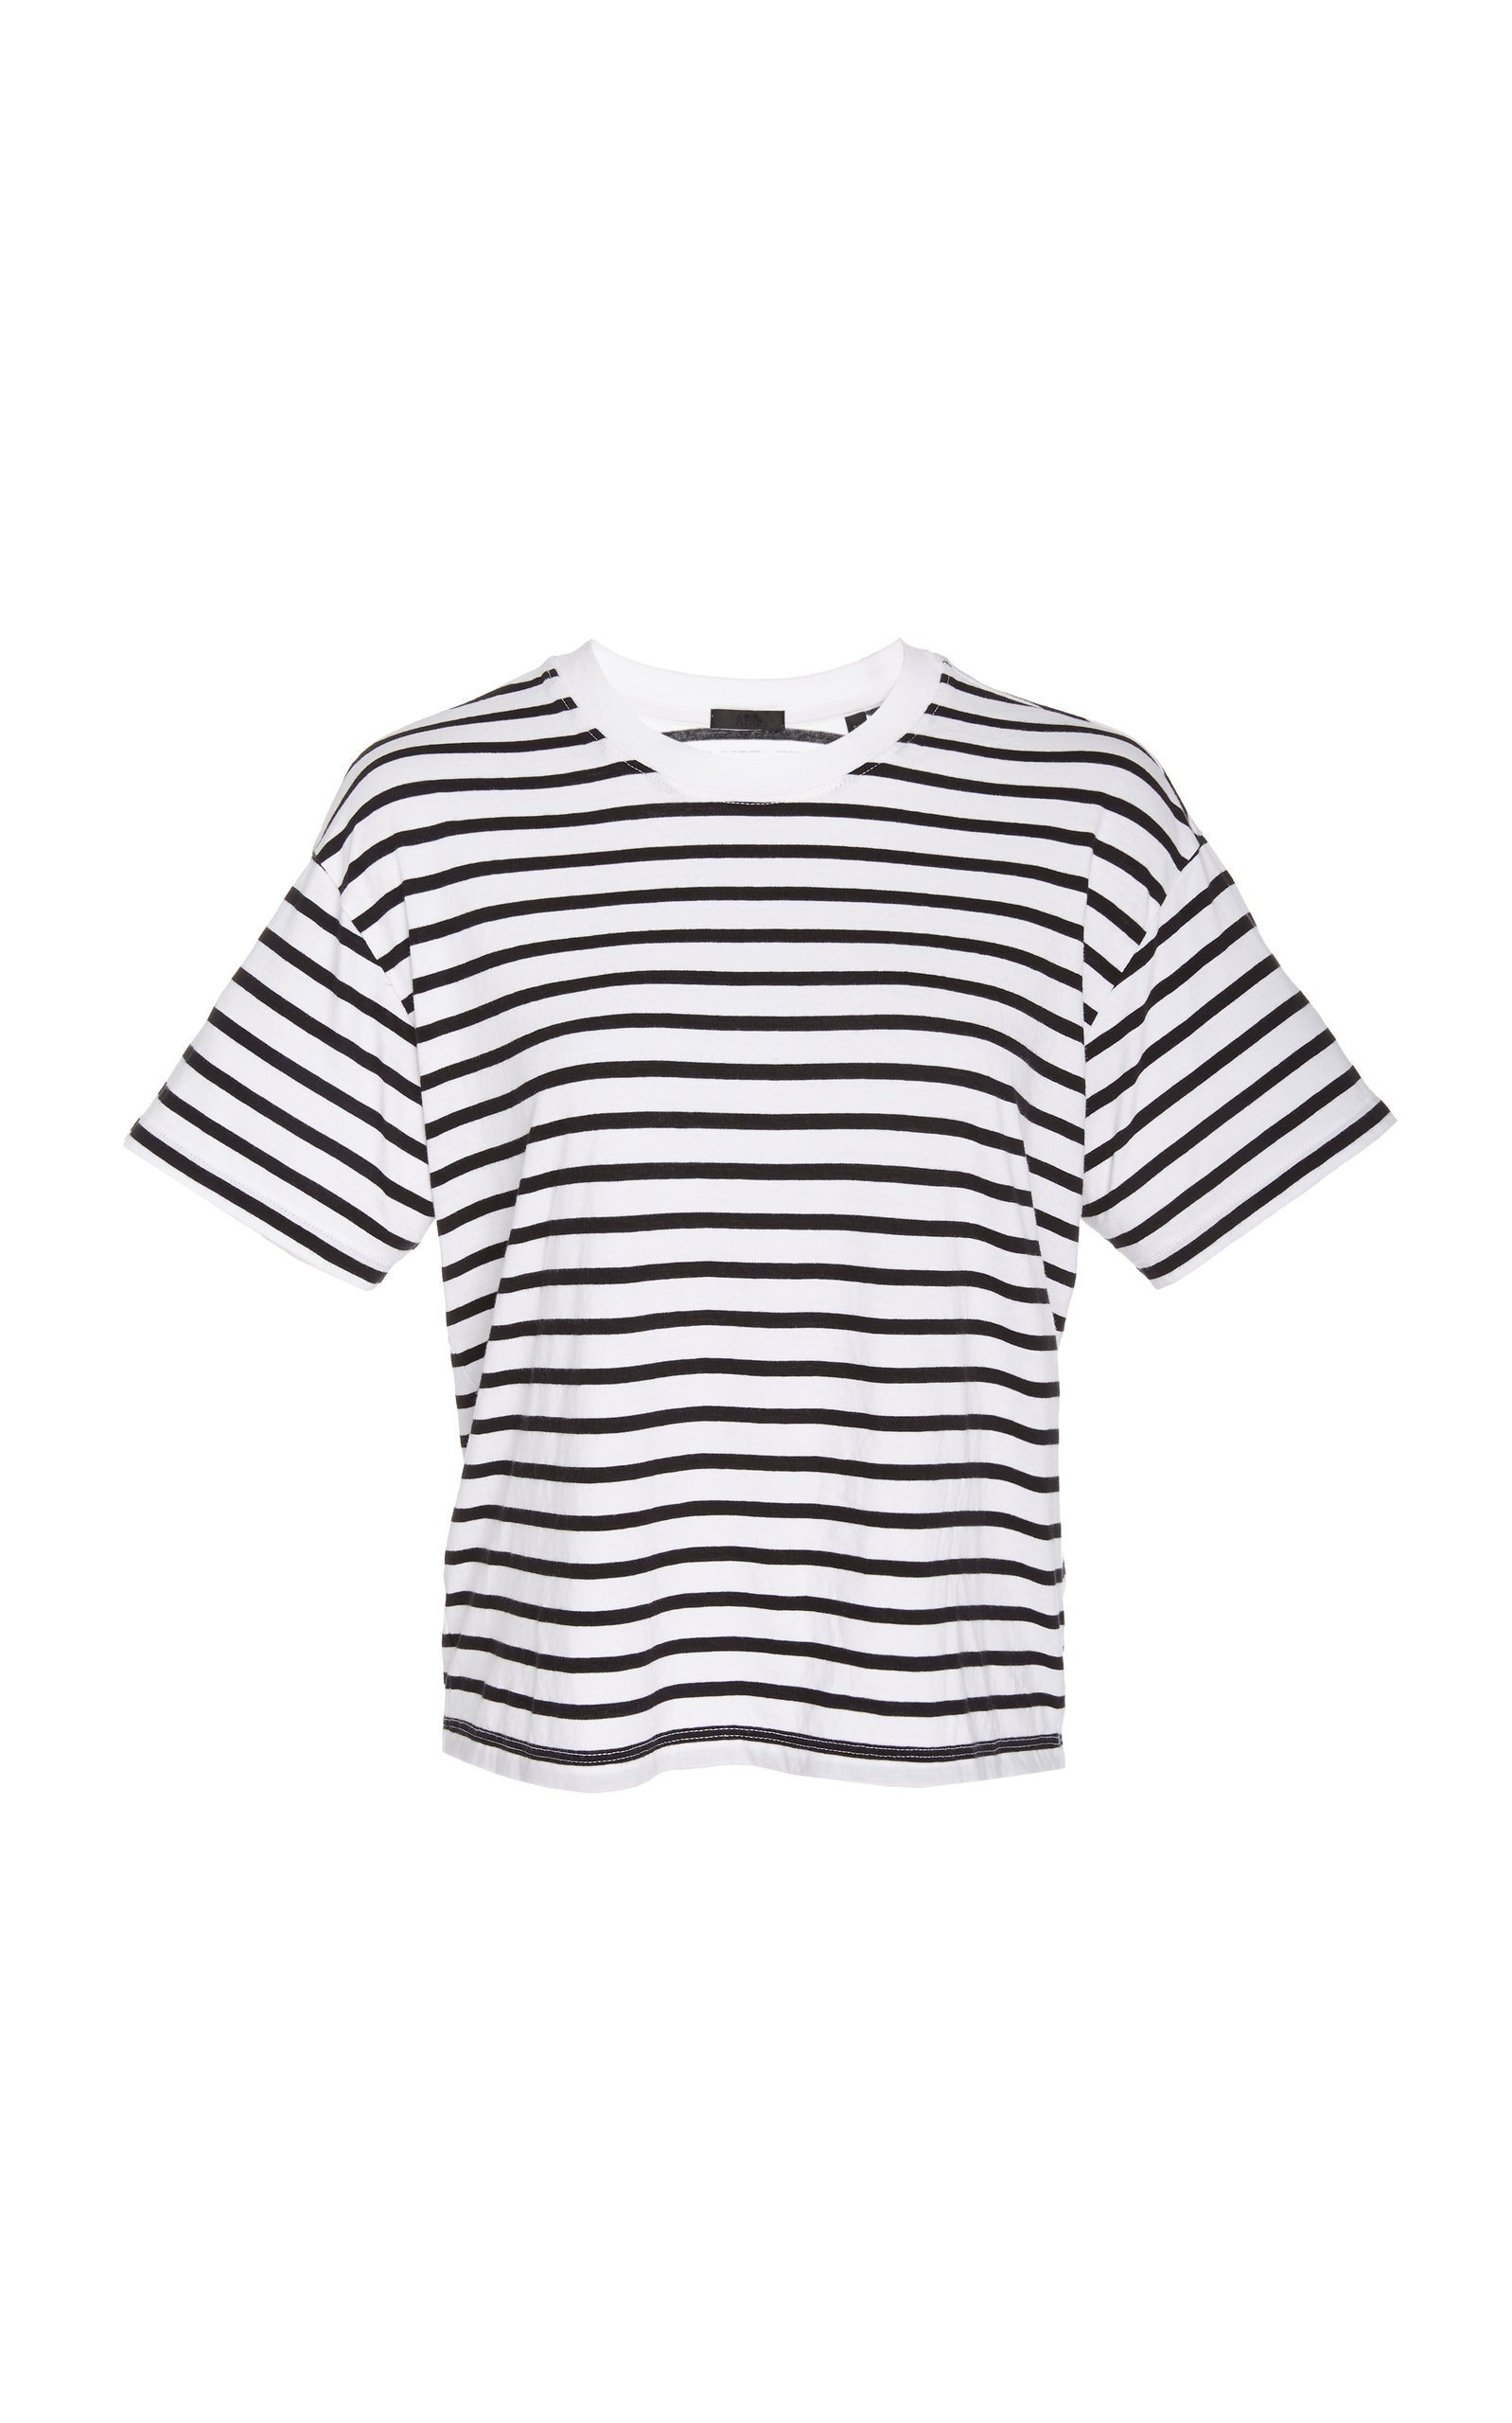 ATM Striped Classic Jersey Boy Tee